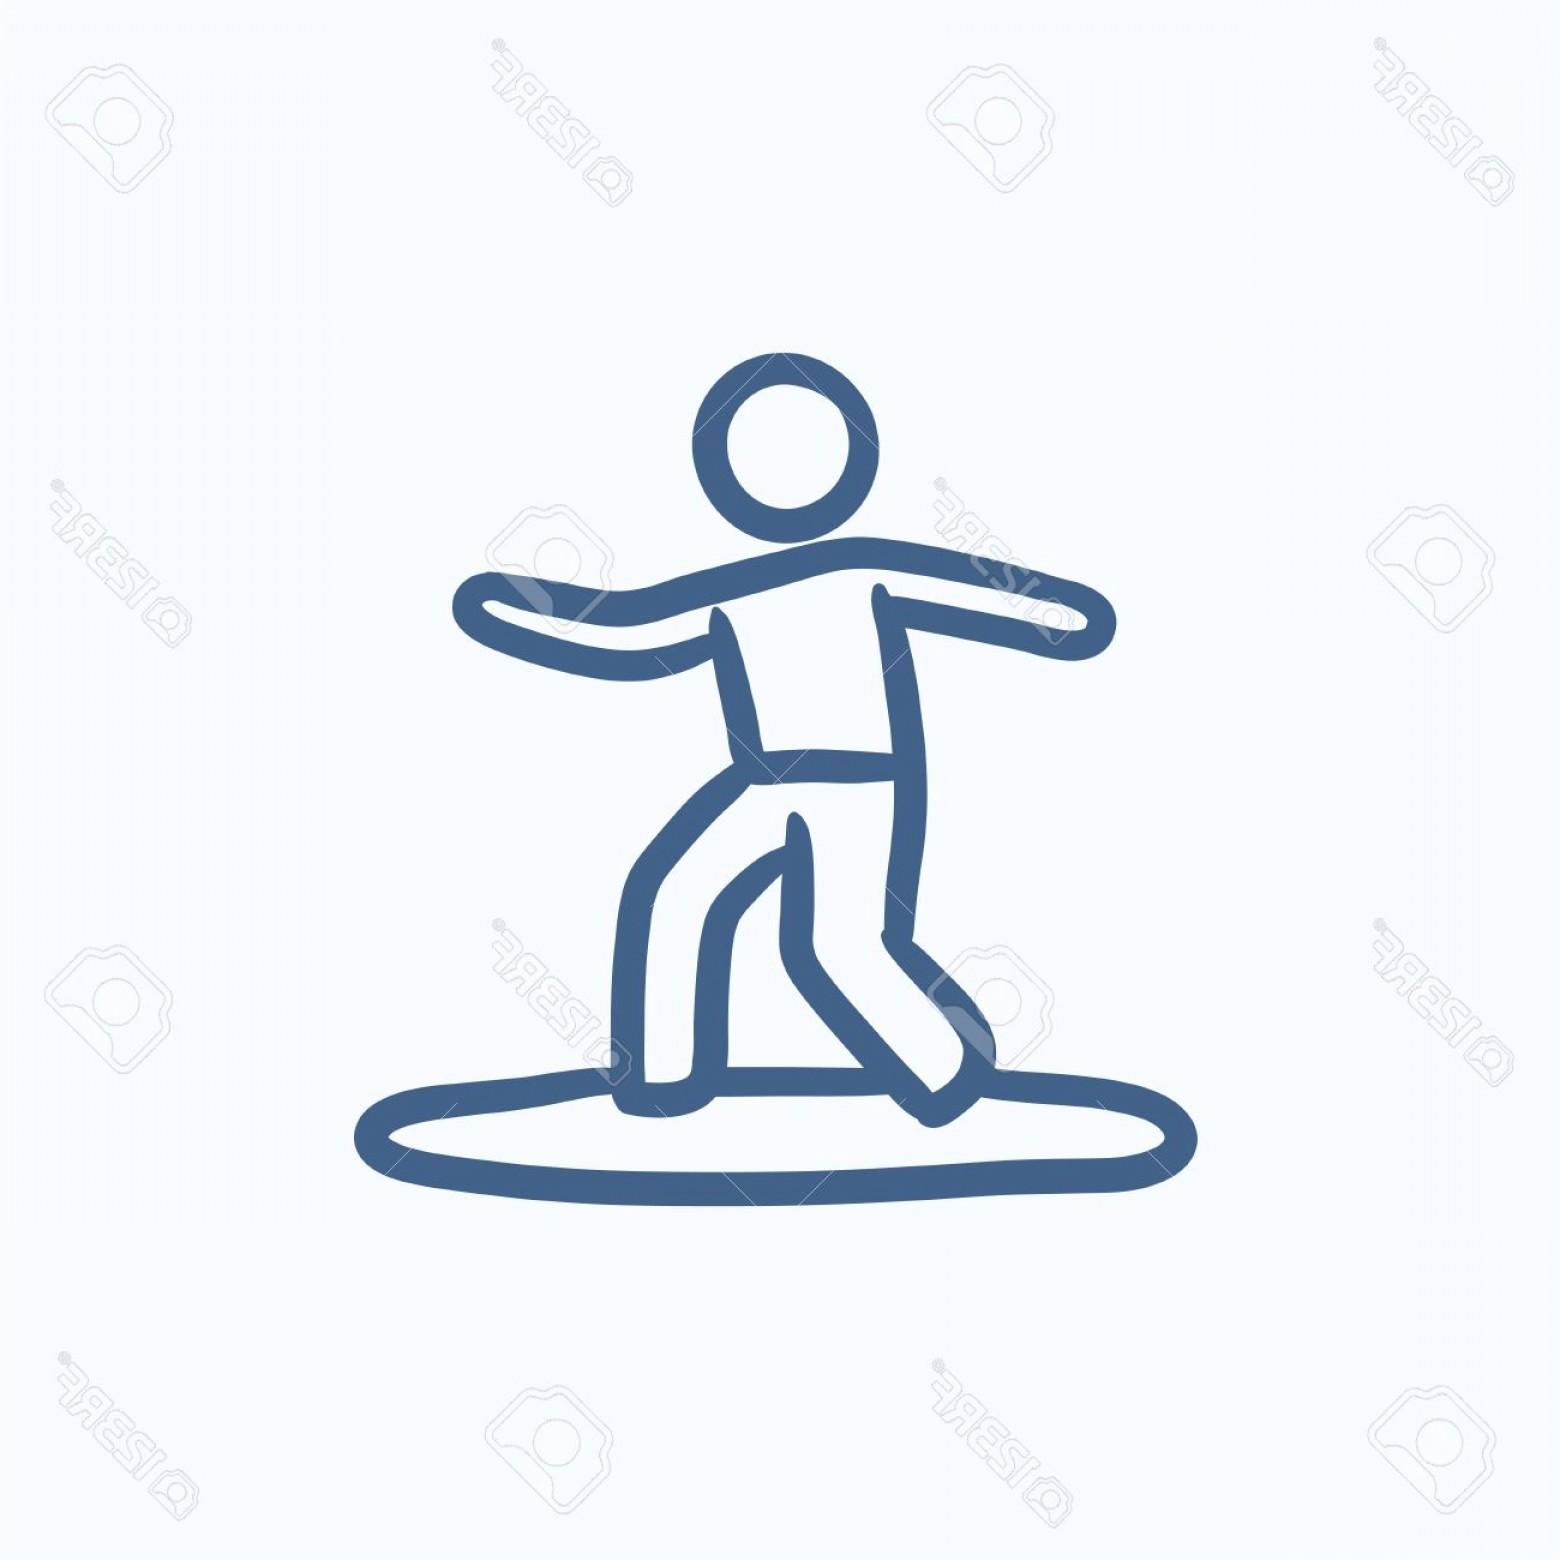 Surfboard Vector Drawing: Photostock Vector Male Surfer Riding On Surfboard Vector Sketch Icon Isolated On Background Hand Drawn Male Surfer Rid